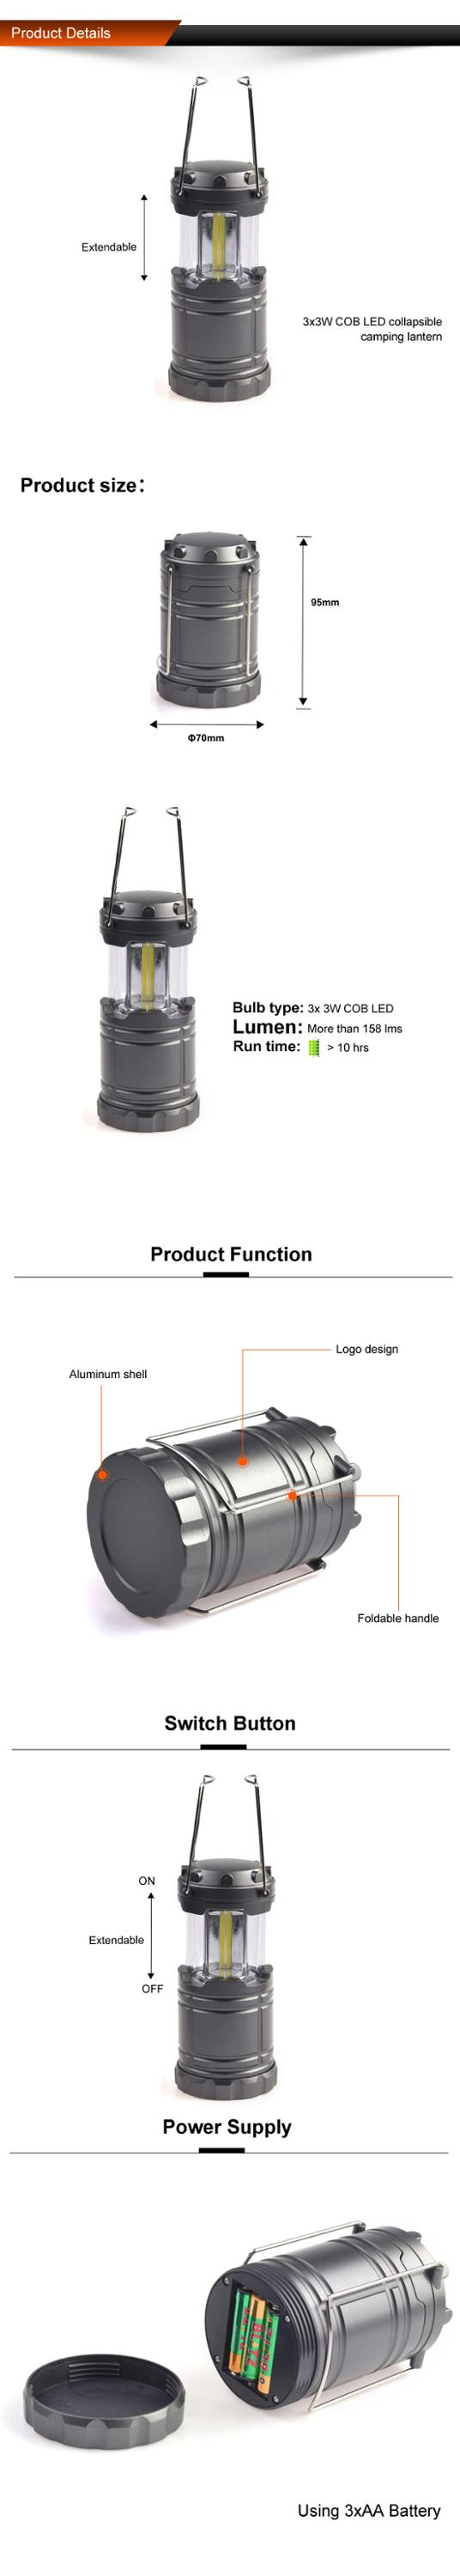 Factory Cheapest Price Direct Manufacture Get a free sample OEM logo extermal benefits LED Camping Lantern Outdoor camping Light